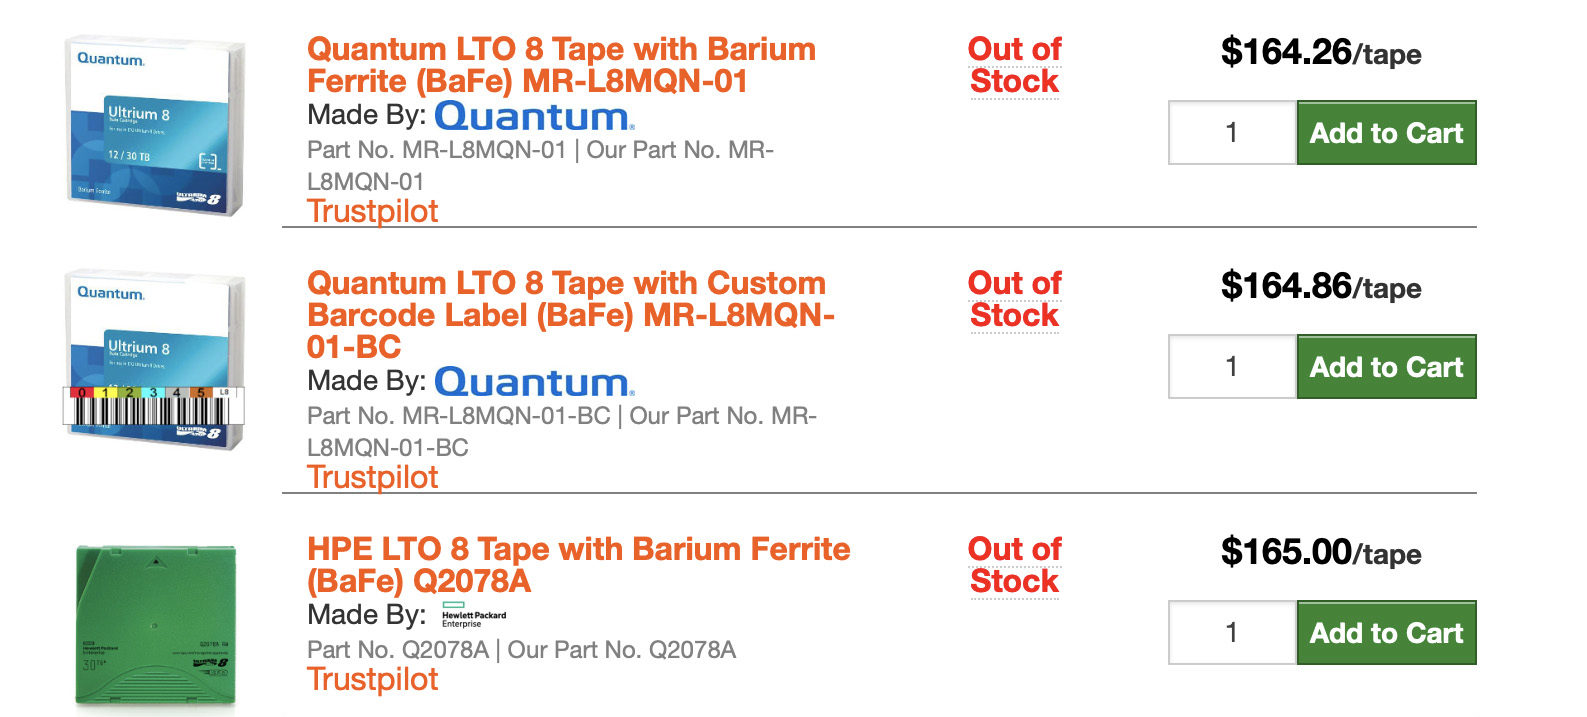 All LTO-8 tapes for sale at tapeandmedia.com are marked out-of-stock on June 8, 2019